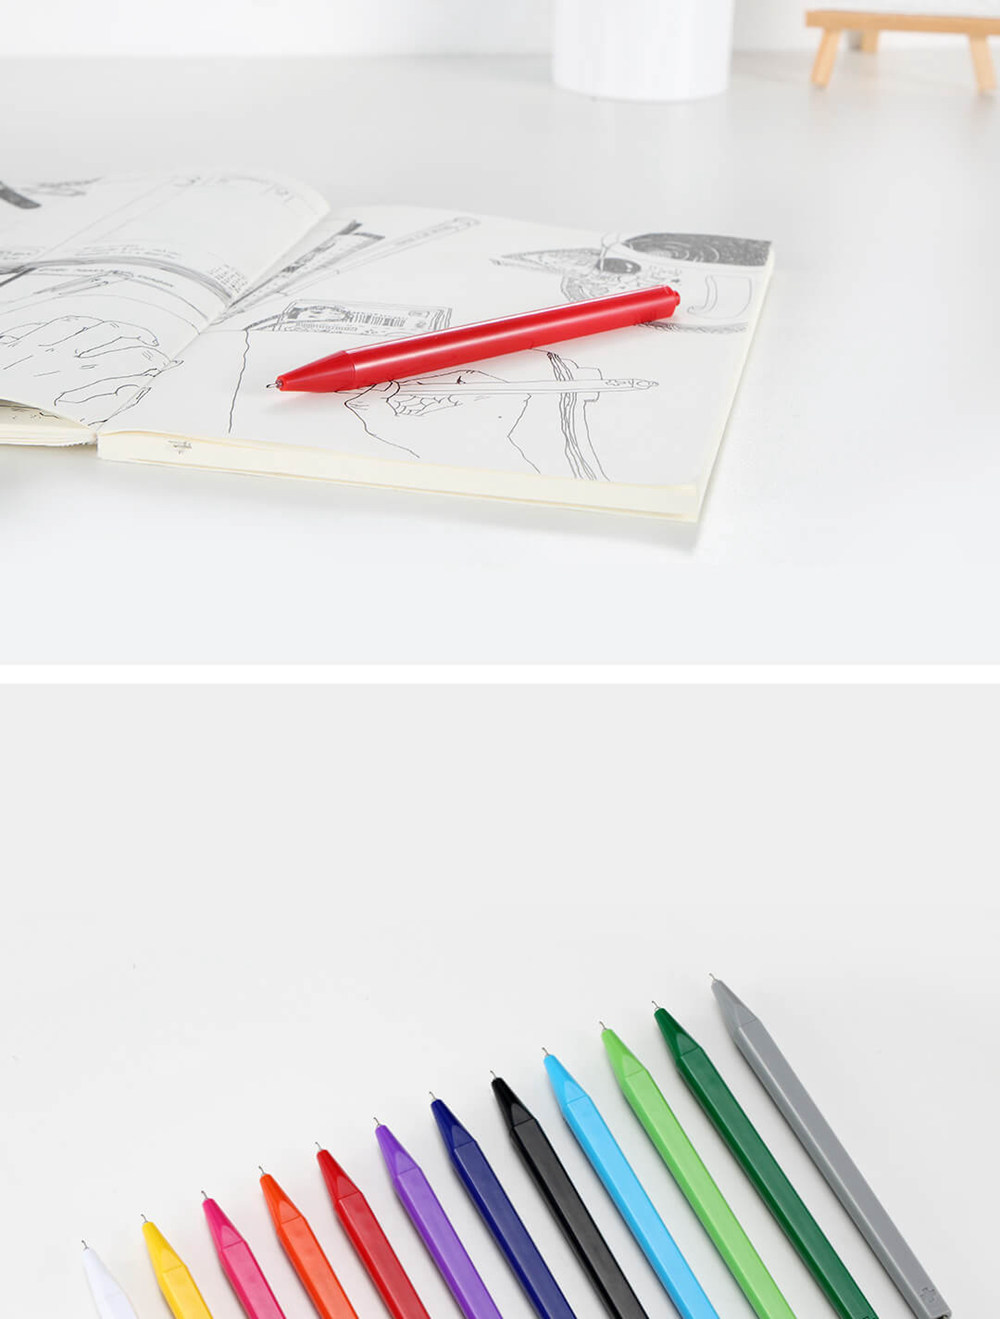 12Pcs/Set Xiaomi Radical 0.4mm Swiss Gel Pen Prevents Ink Leakage Smooth Writing Durable Pen